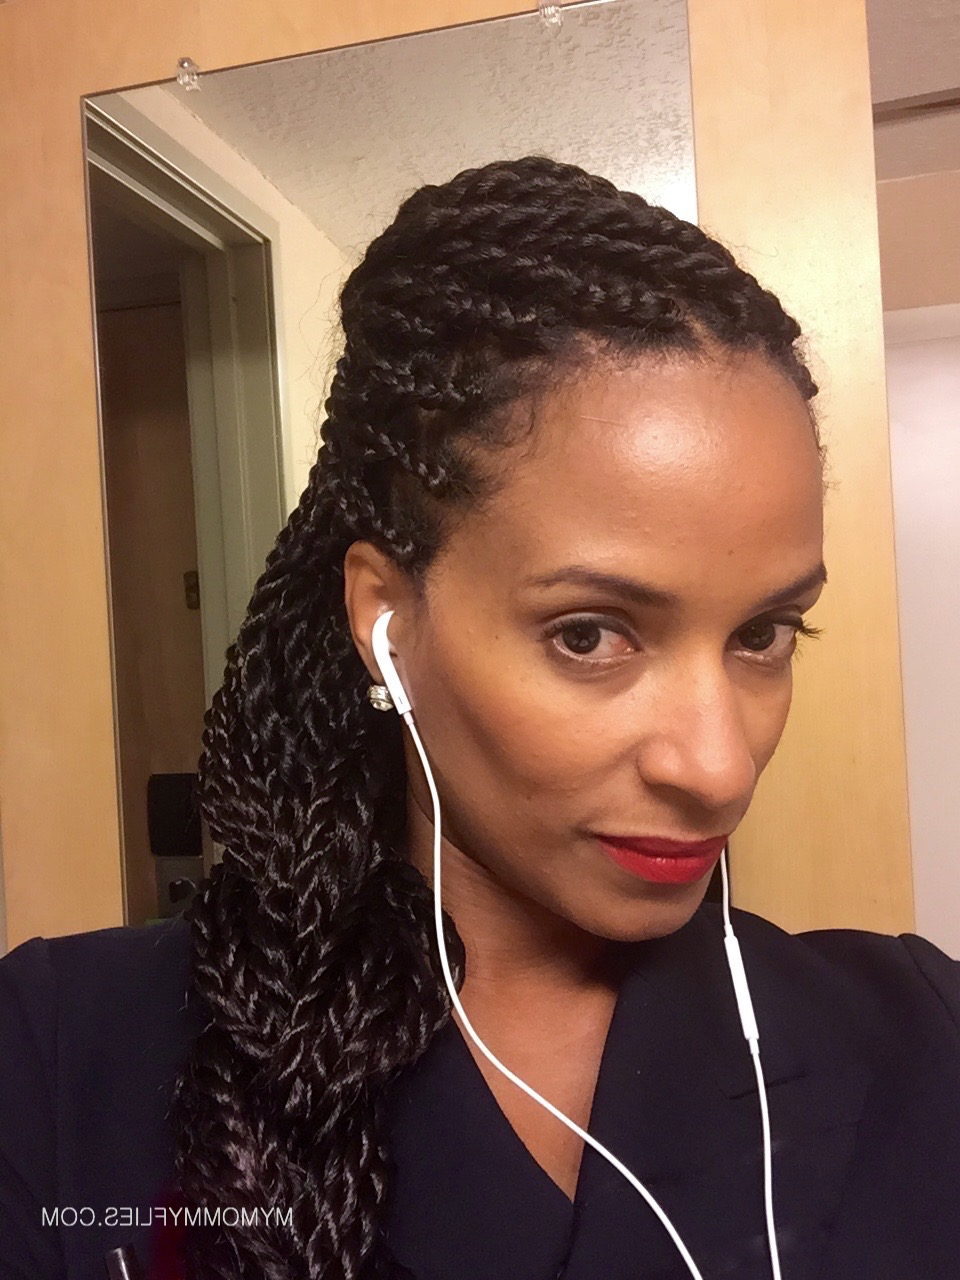 15 Easy Senegalese Twists Hair Styles For Travel – My Mommy Inside Famous Rope Twist Hairstyles With Straight Hair (Gallery 15 of 20)